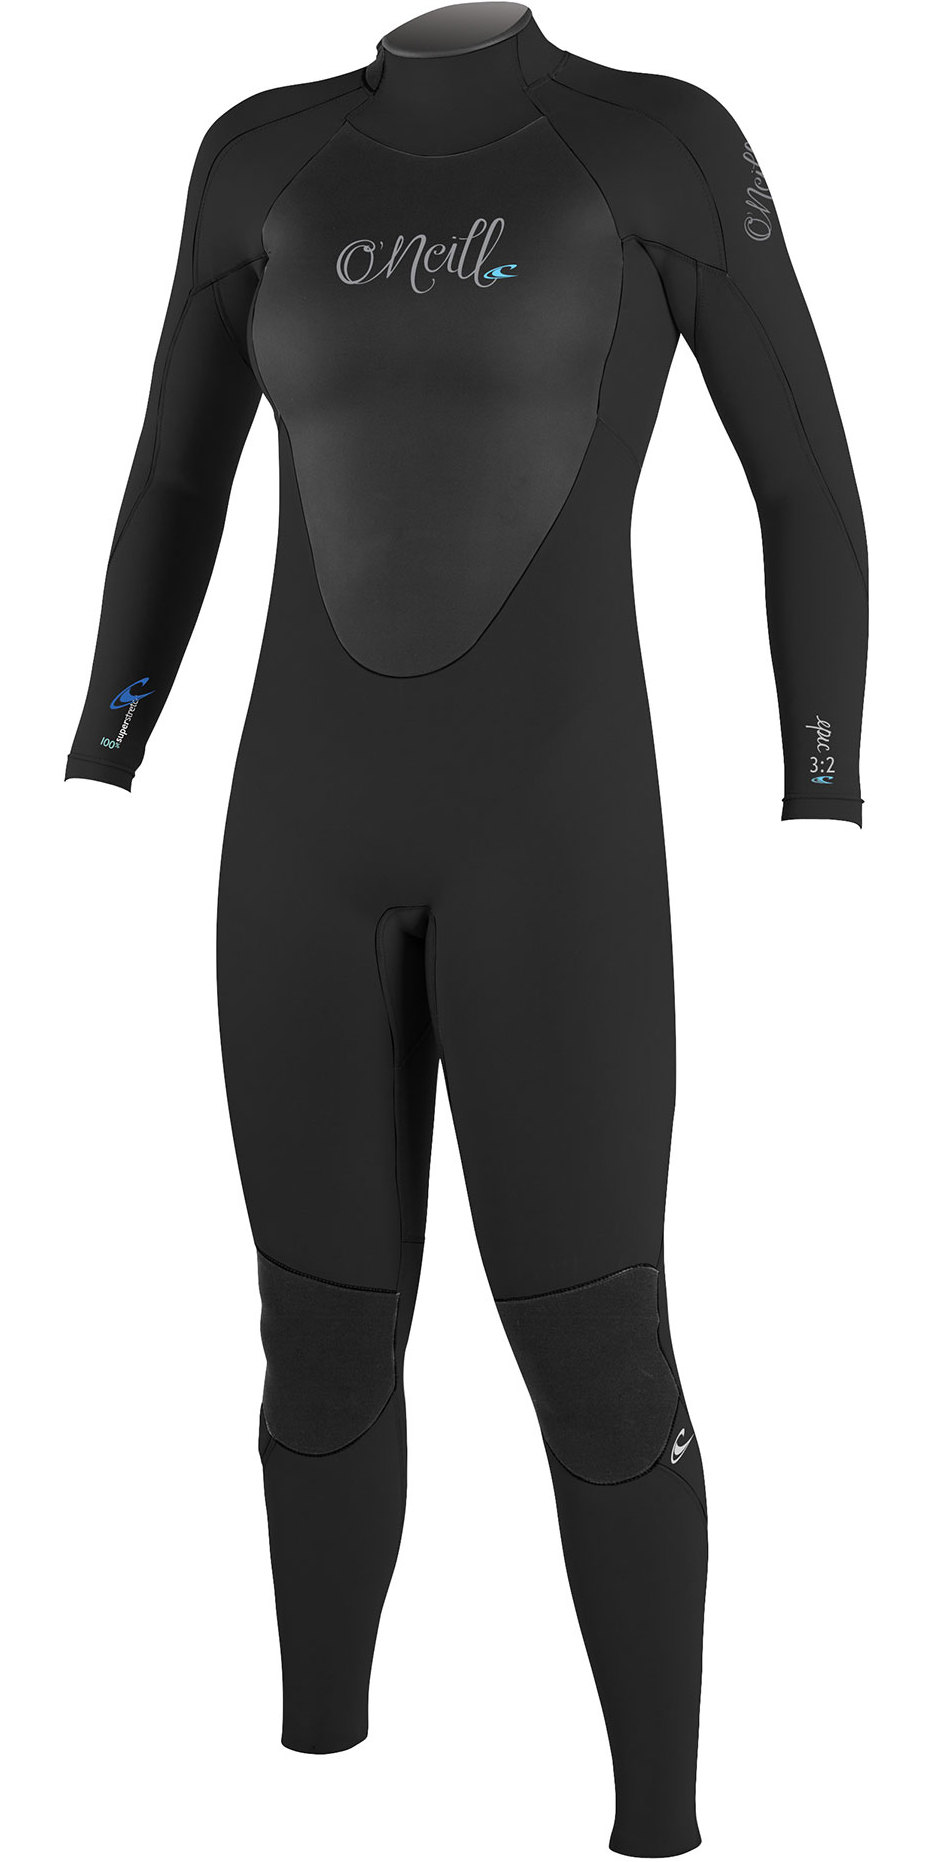 O'Neill Womens Epic 5/4mm Back Zip GBS Wetsuit BLACK / BLACK 4218